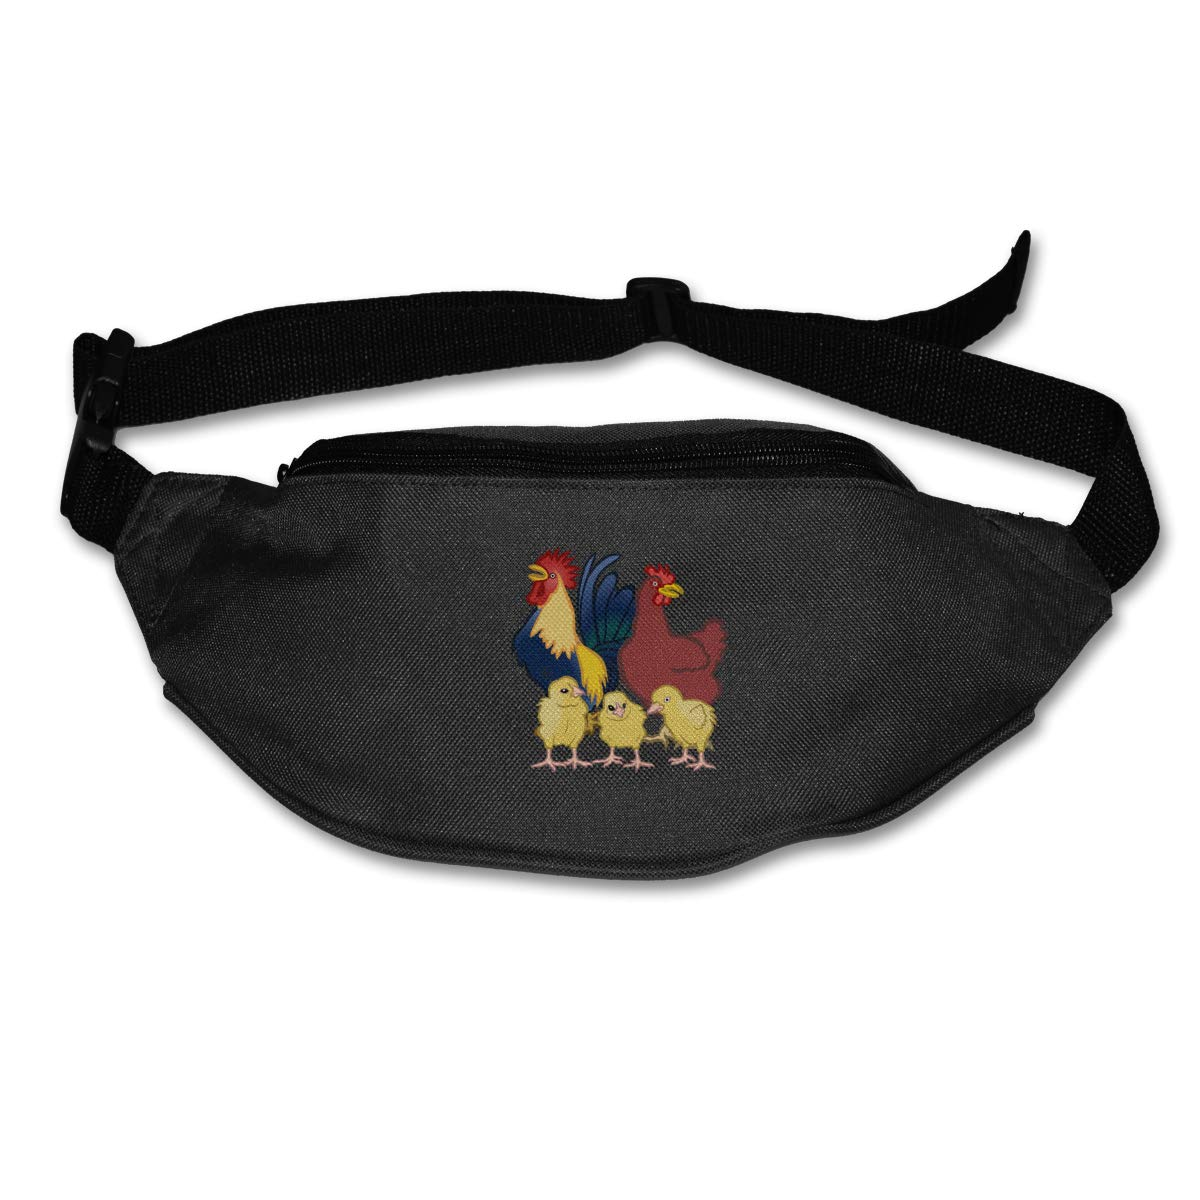 Cartoon Cock Family Sport Waist Pack Fanny Pack Adjustable For Travel